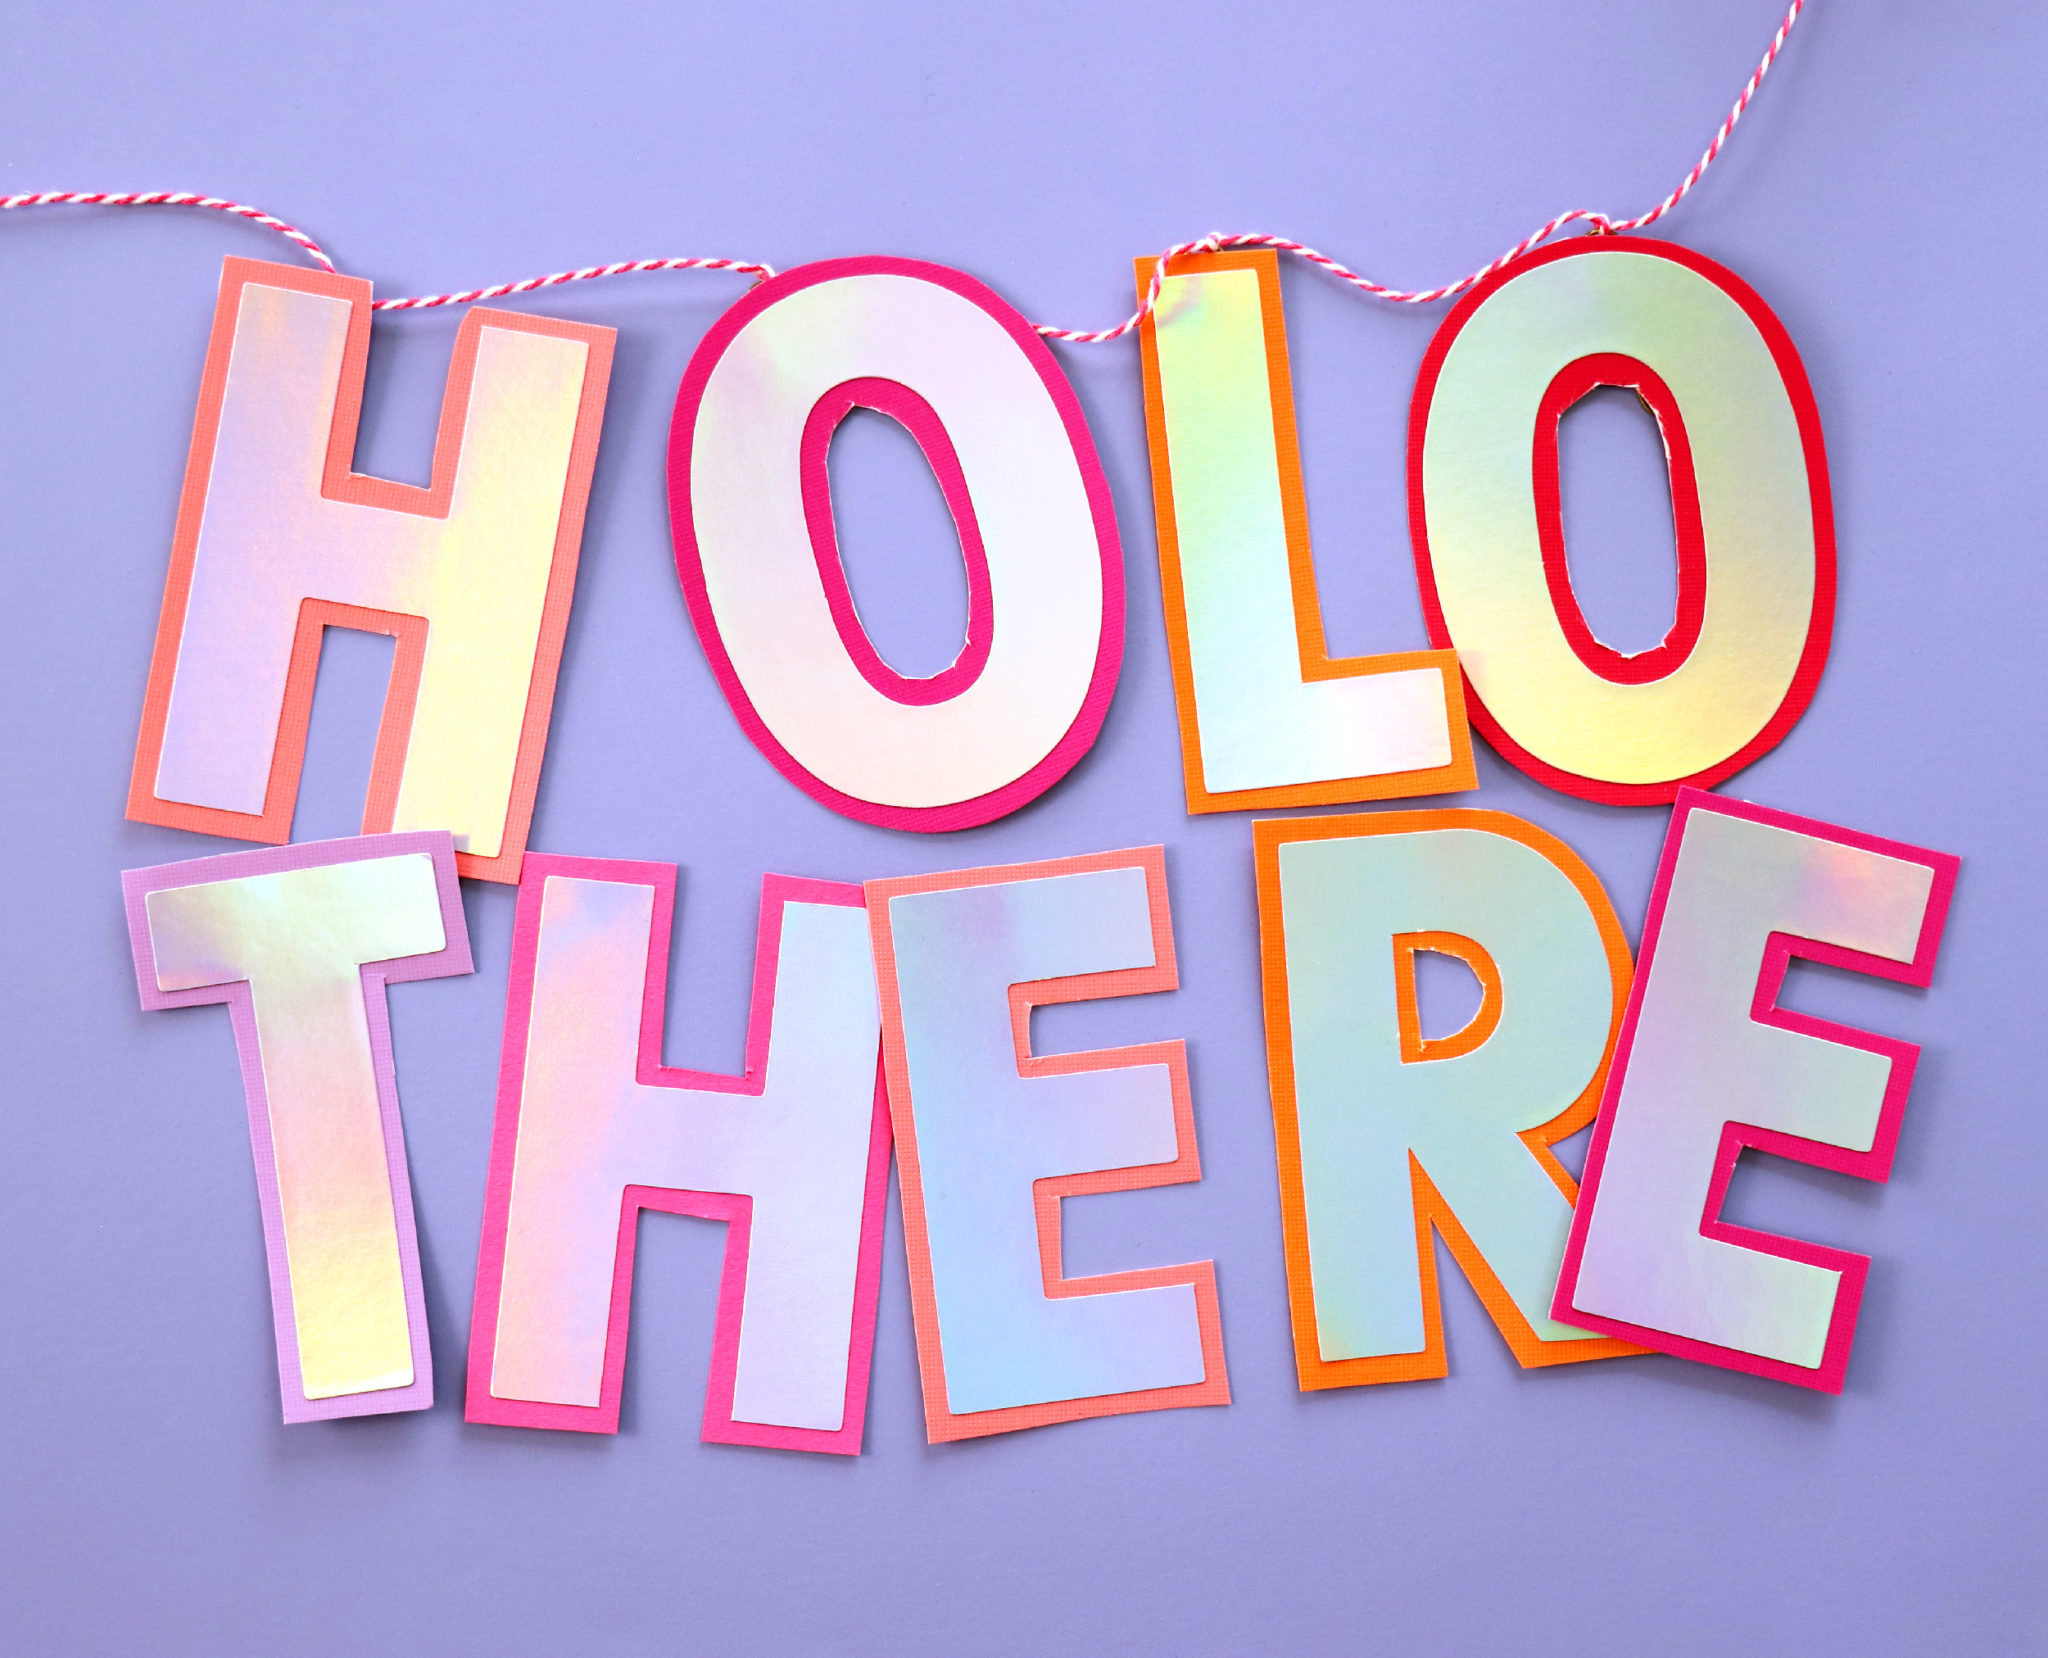 holo_letters